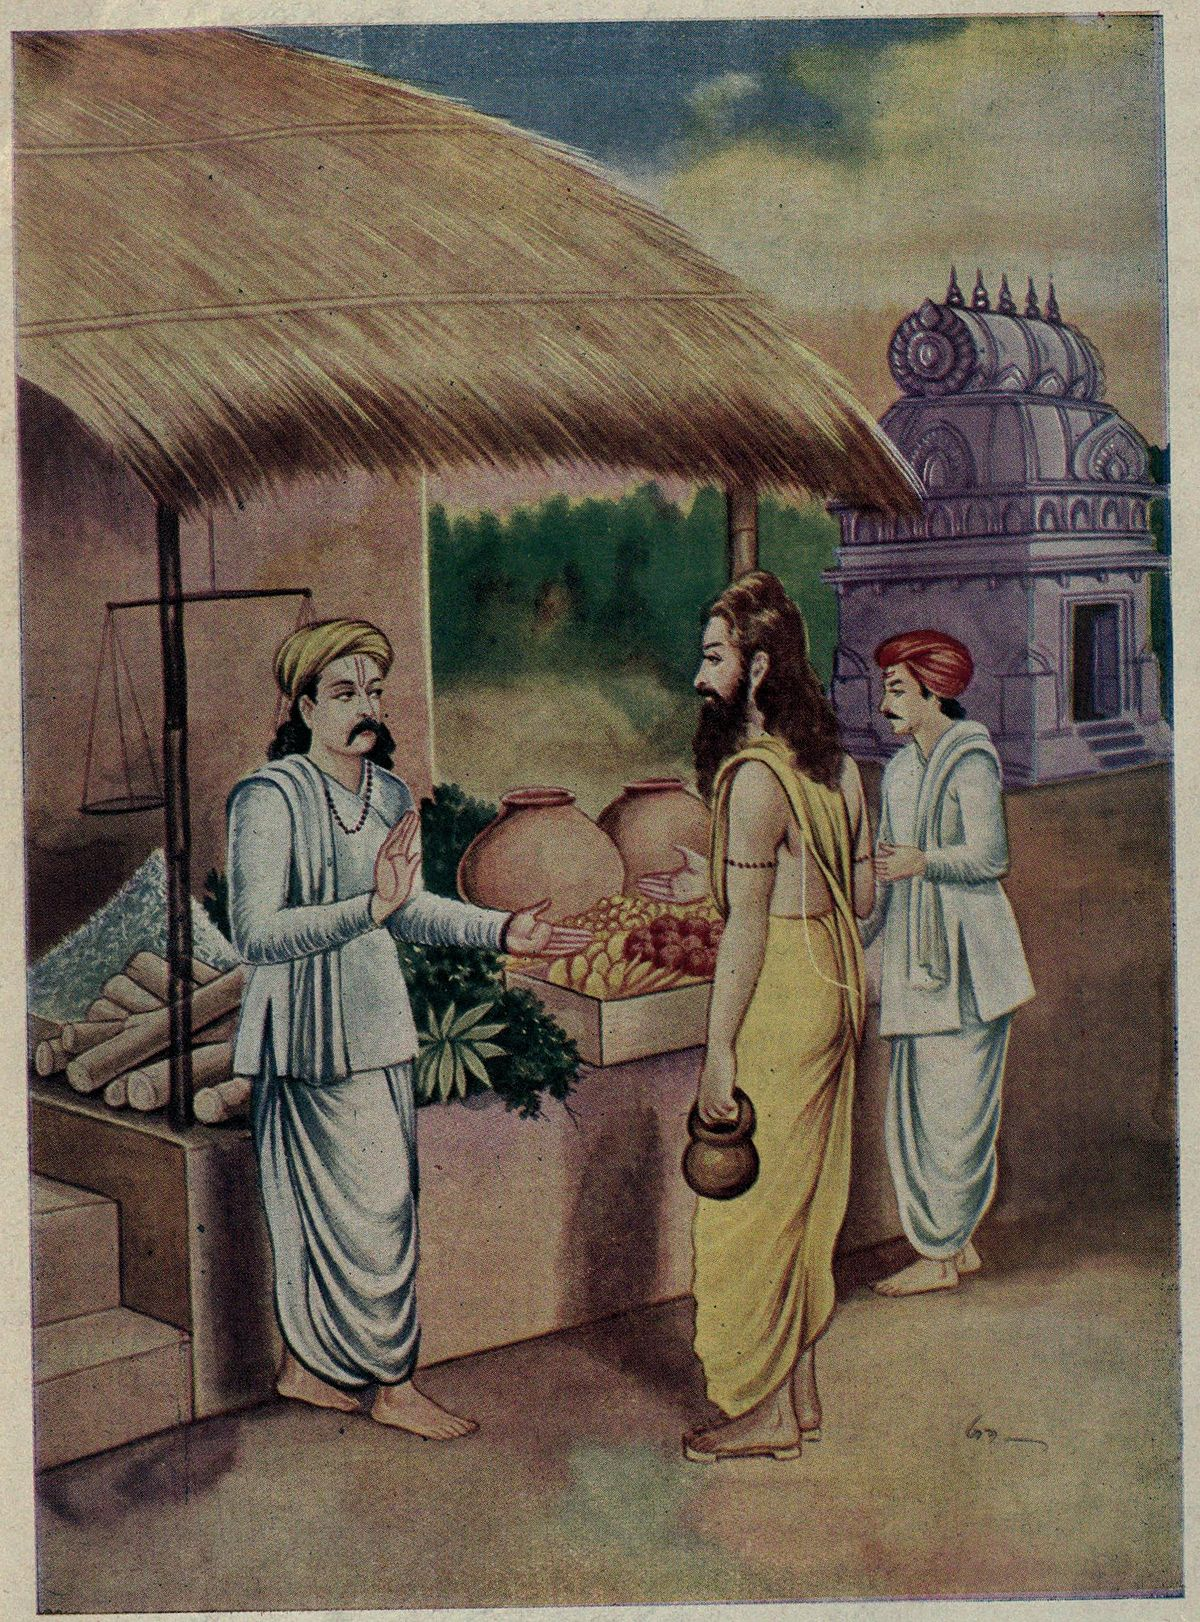 caste system This was india's system of social hierarchy at its root, it was a system referred to in hindu scriptures that aimed to classify people based on their nature, aptitude and conduct, and put them to work in functions that suited their classification.